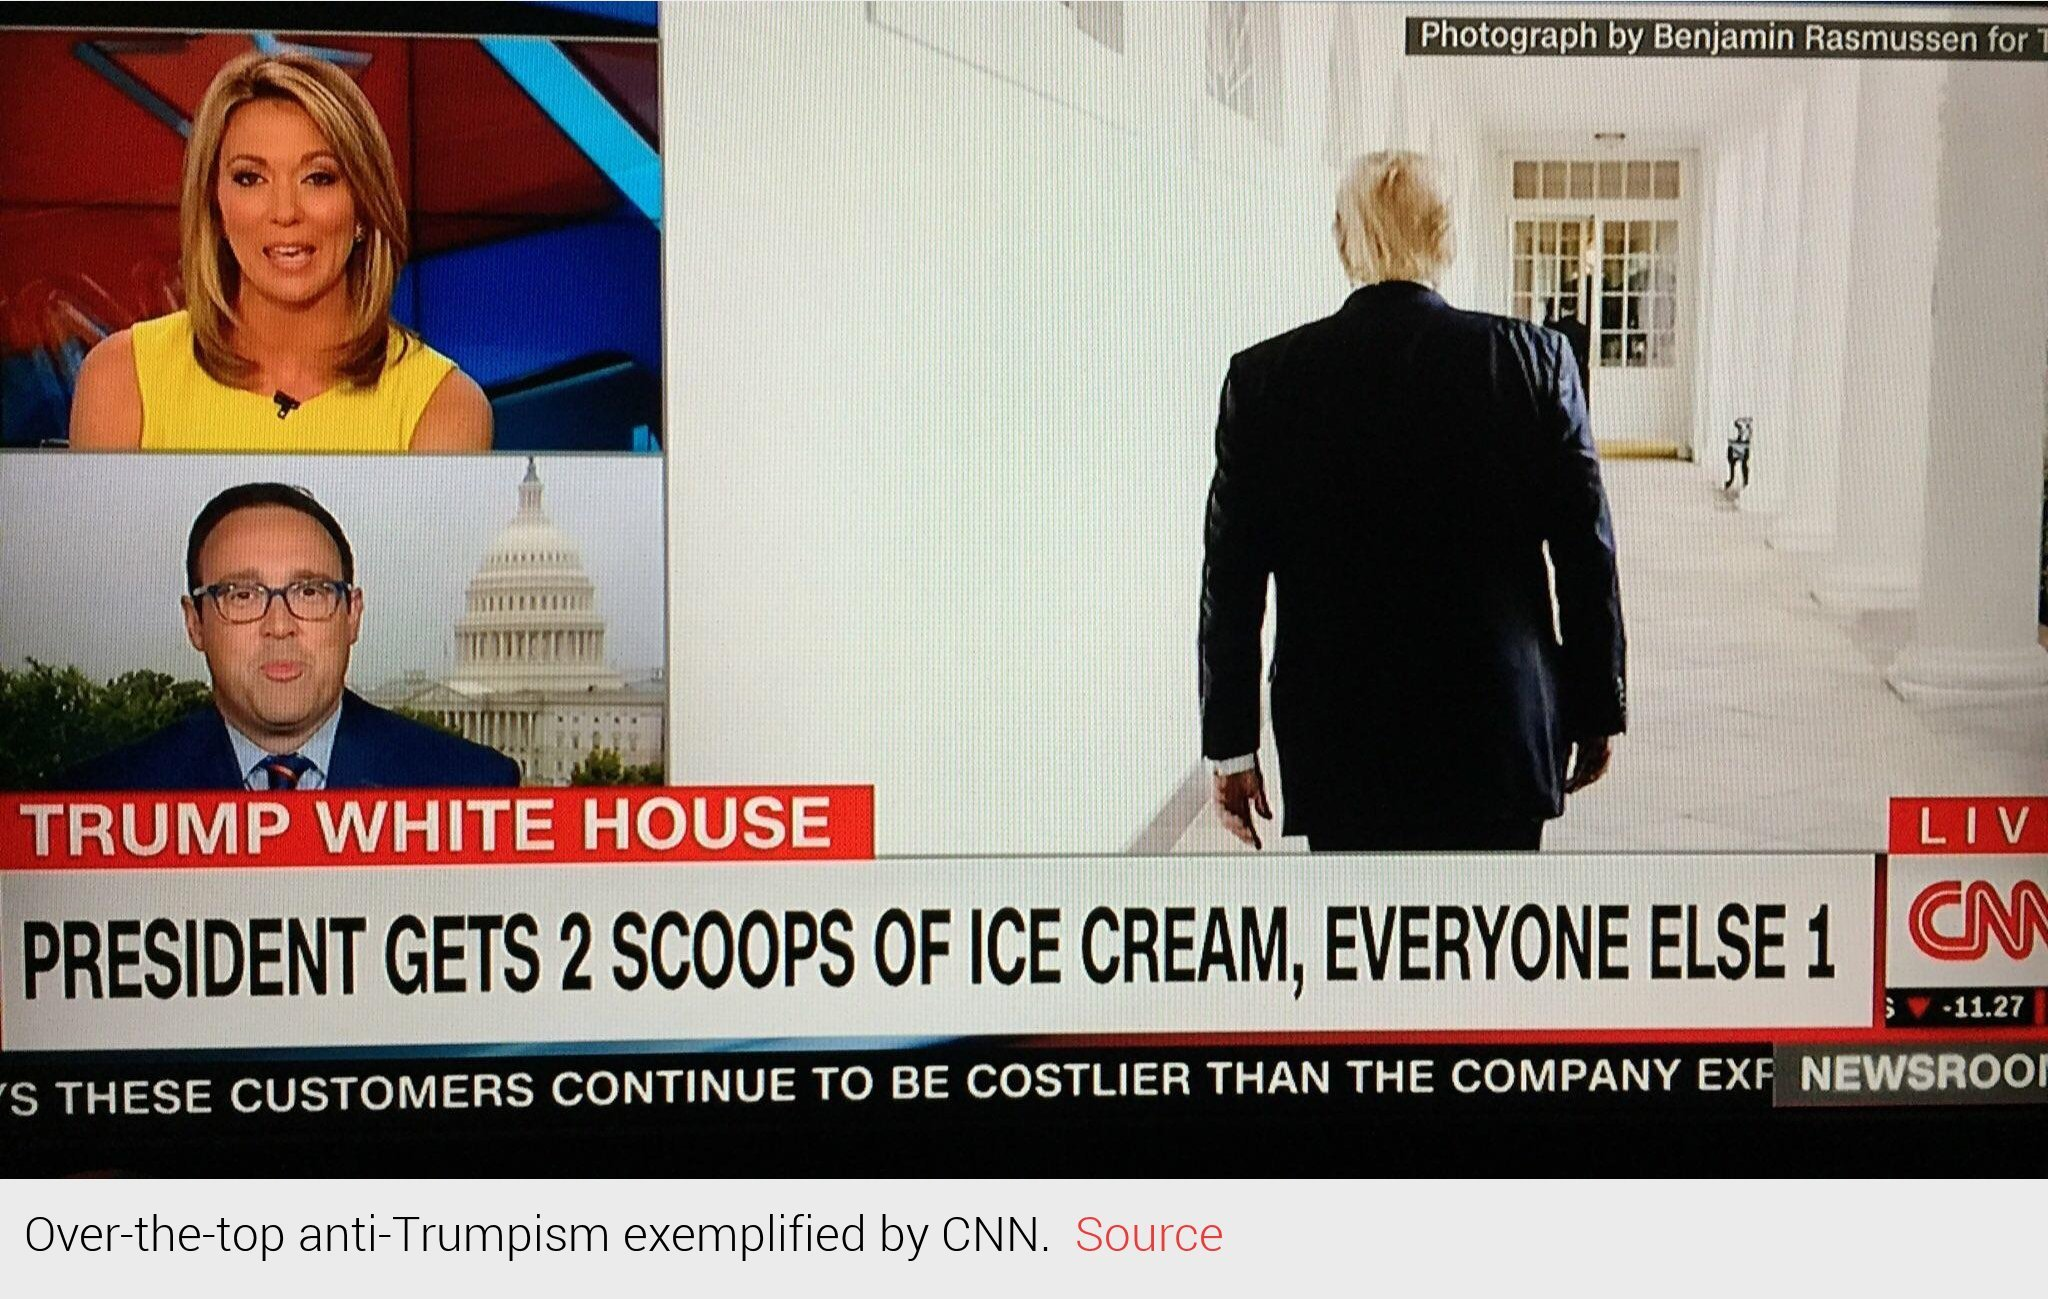 Over-the-top Anti-Trumpism exemplified by CNN